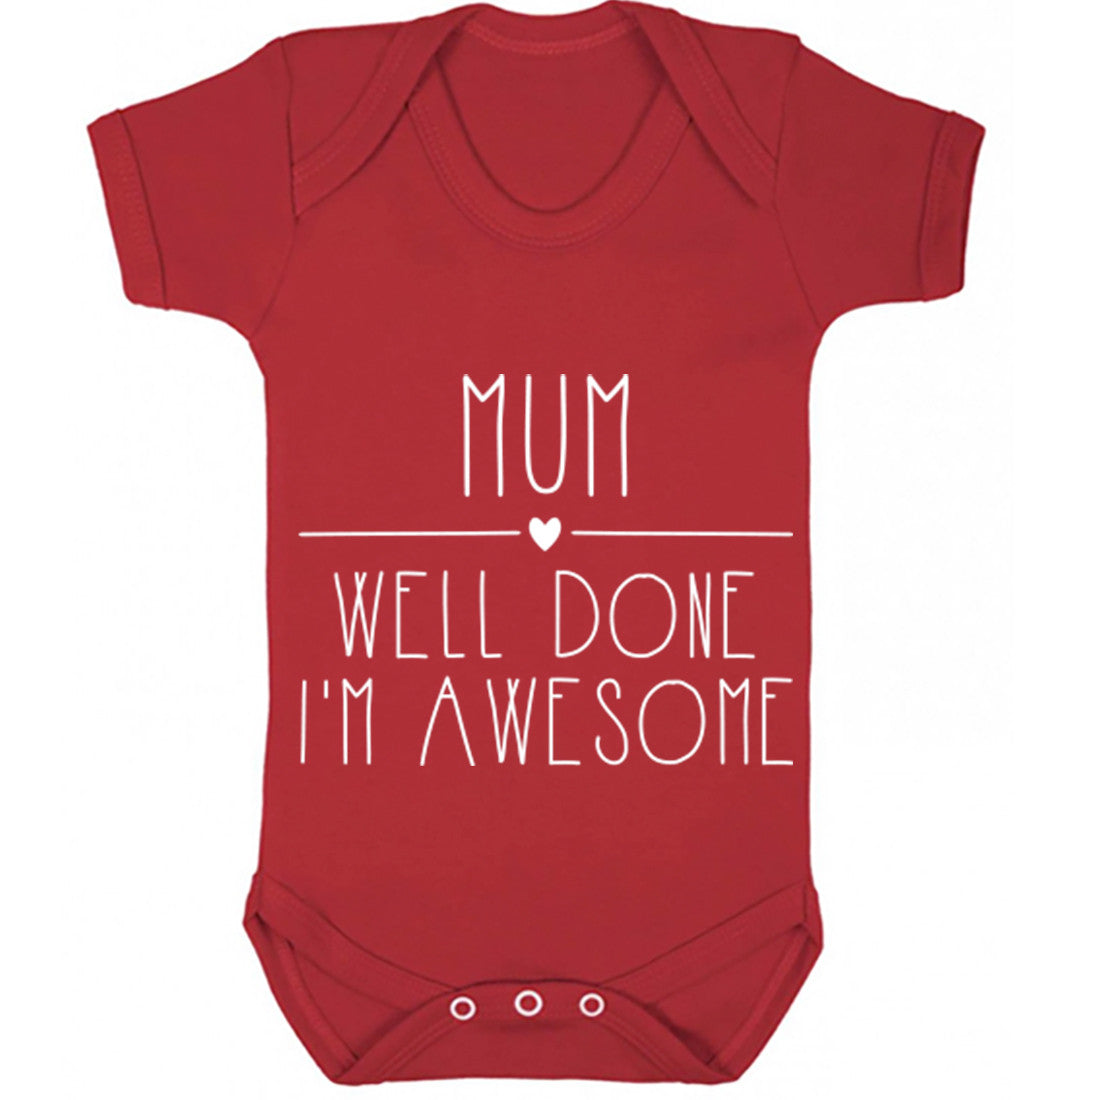 Mum Well Done I'm Awesome Baby Vest K0331